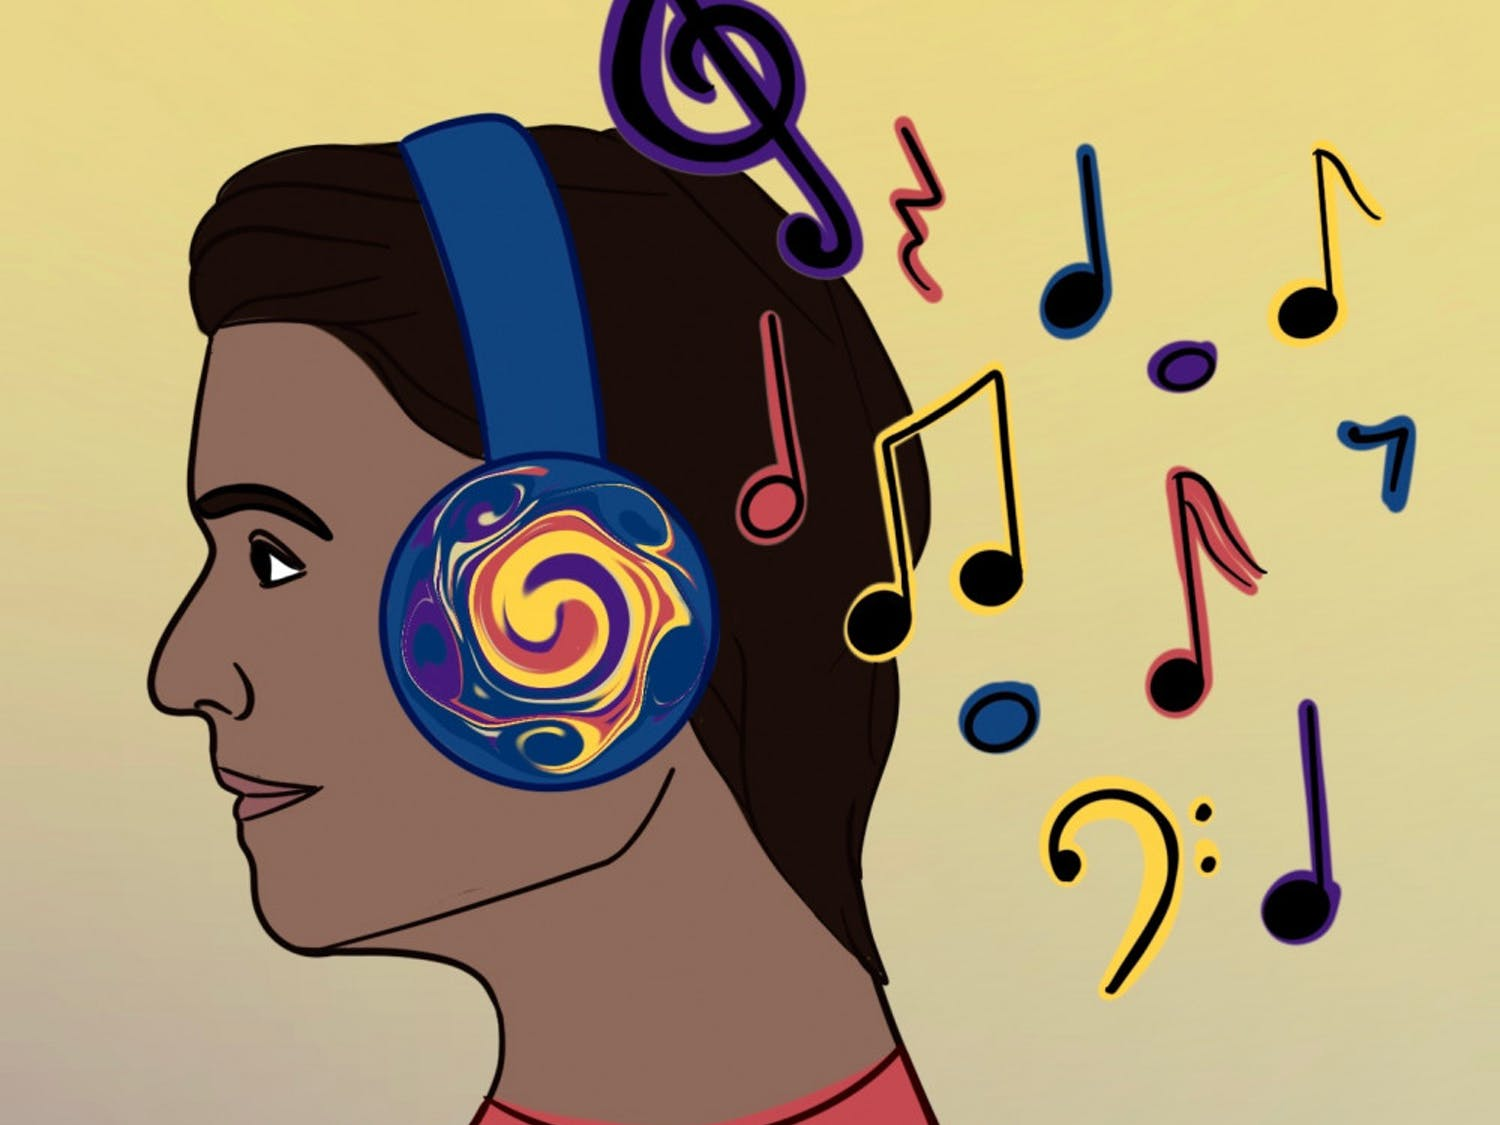 Whether picking up old favorites, making new discoveries or halting listening altogether, many music lovers have altered their listening habits during the COVID-19 pandemic and the lifestyle changes that came with it.